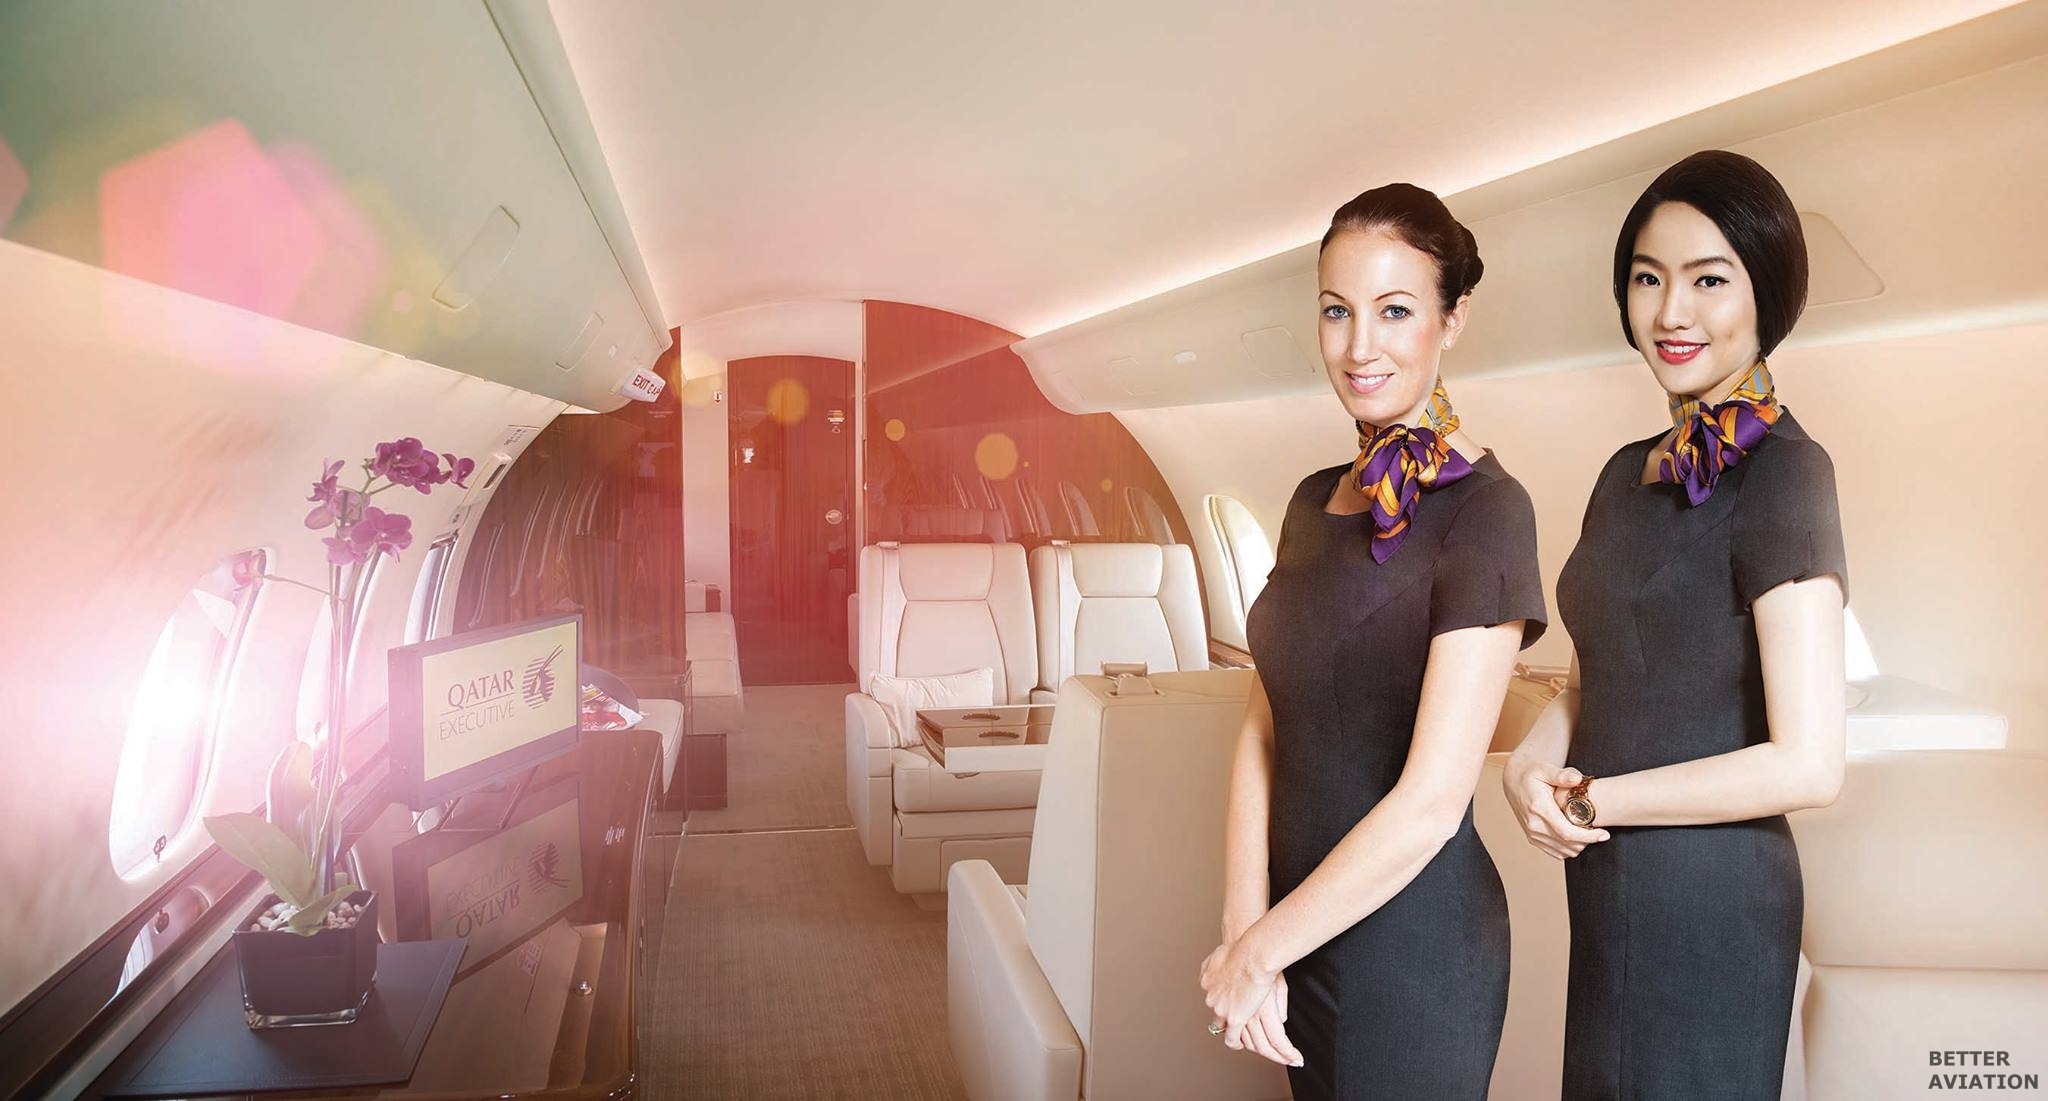 qatar executive cabin crew recruitment